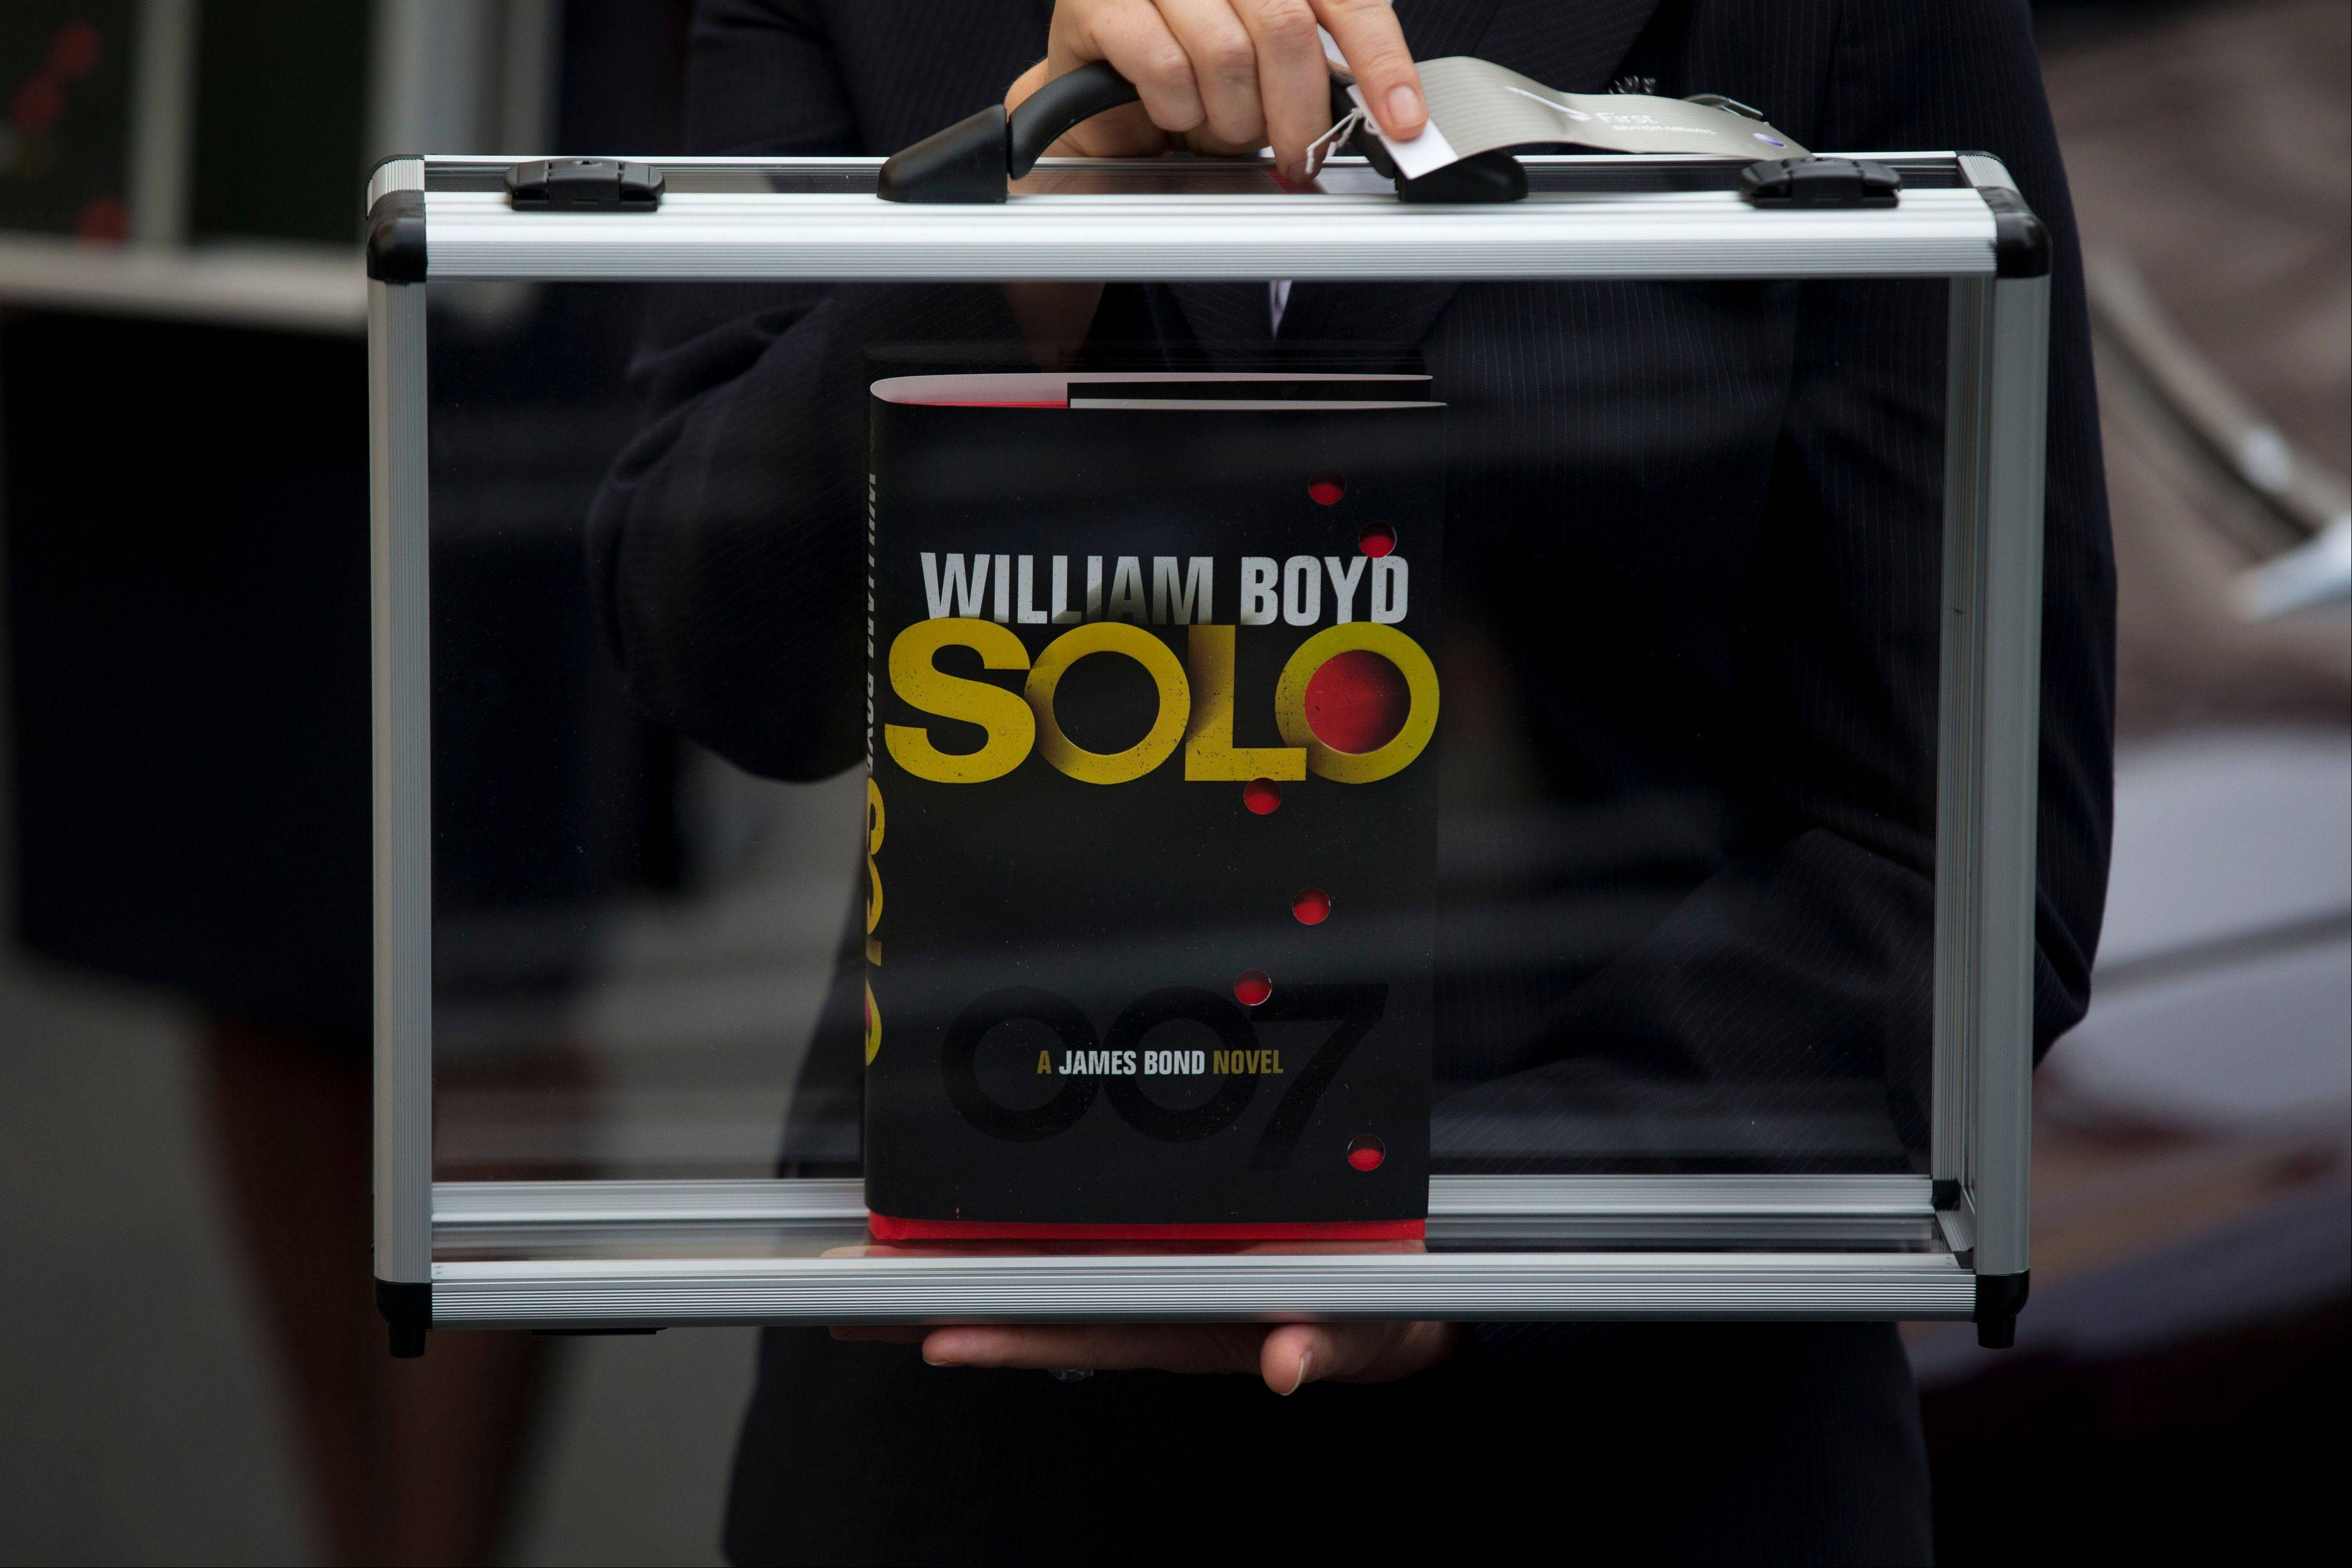 The new James Bond novel �Solo� is set in 1969 and takes the suave British spy, 45 years old and feeling his age, from London�s plush Dorchester Hotel to a war-torn West African country and to Washington.